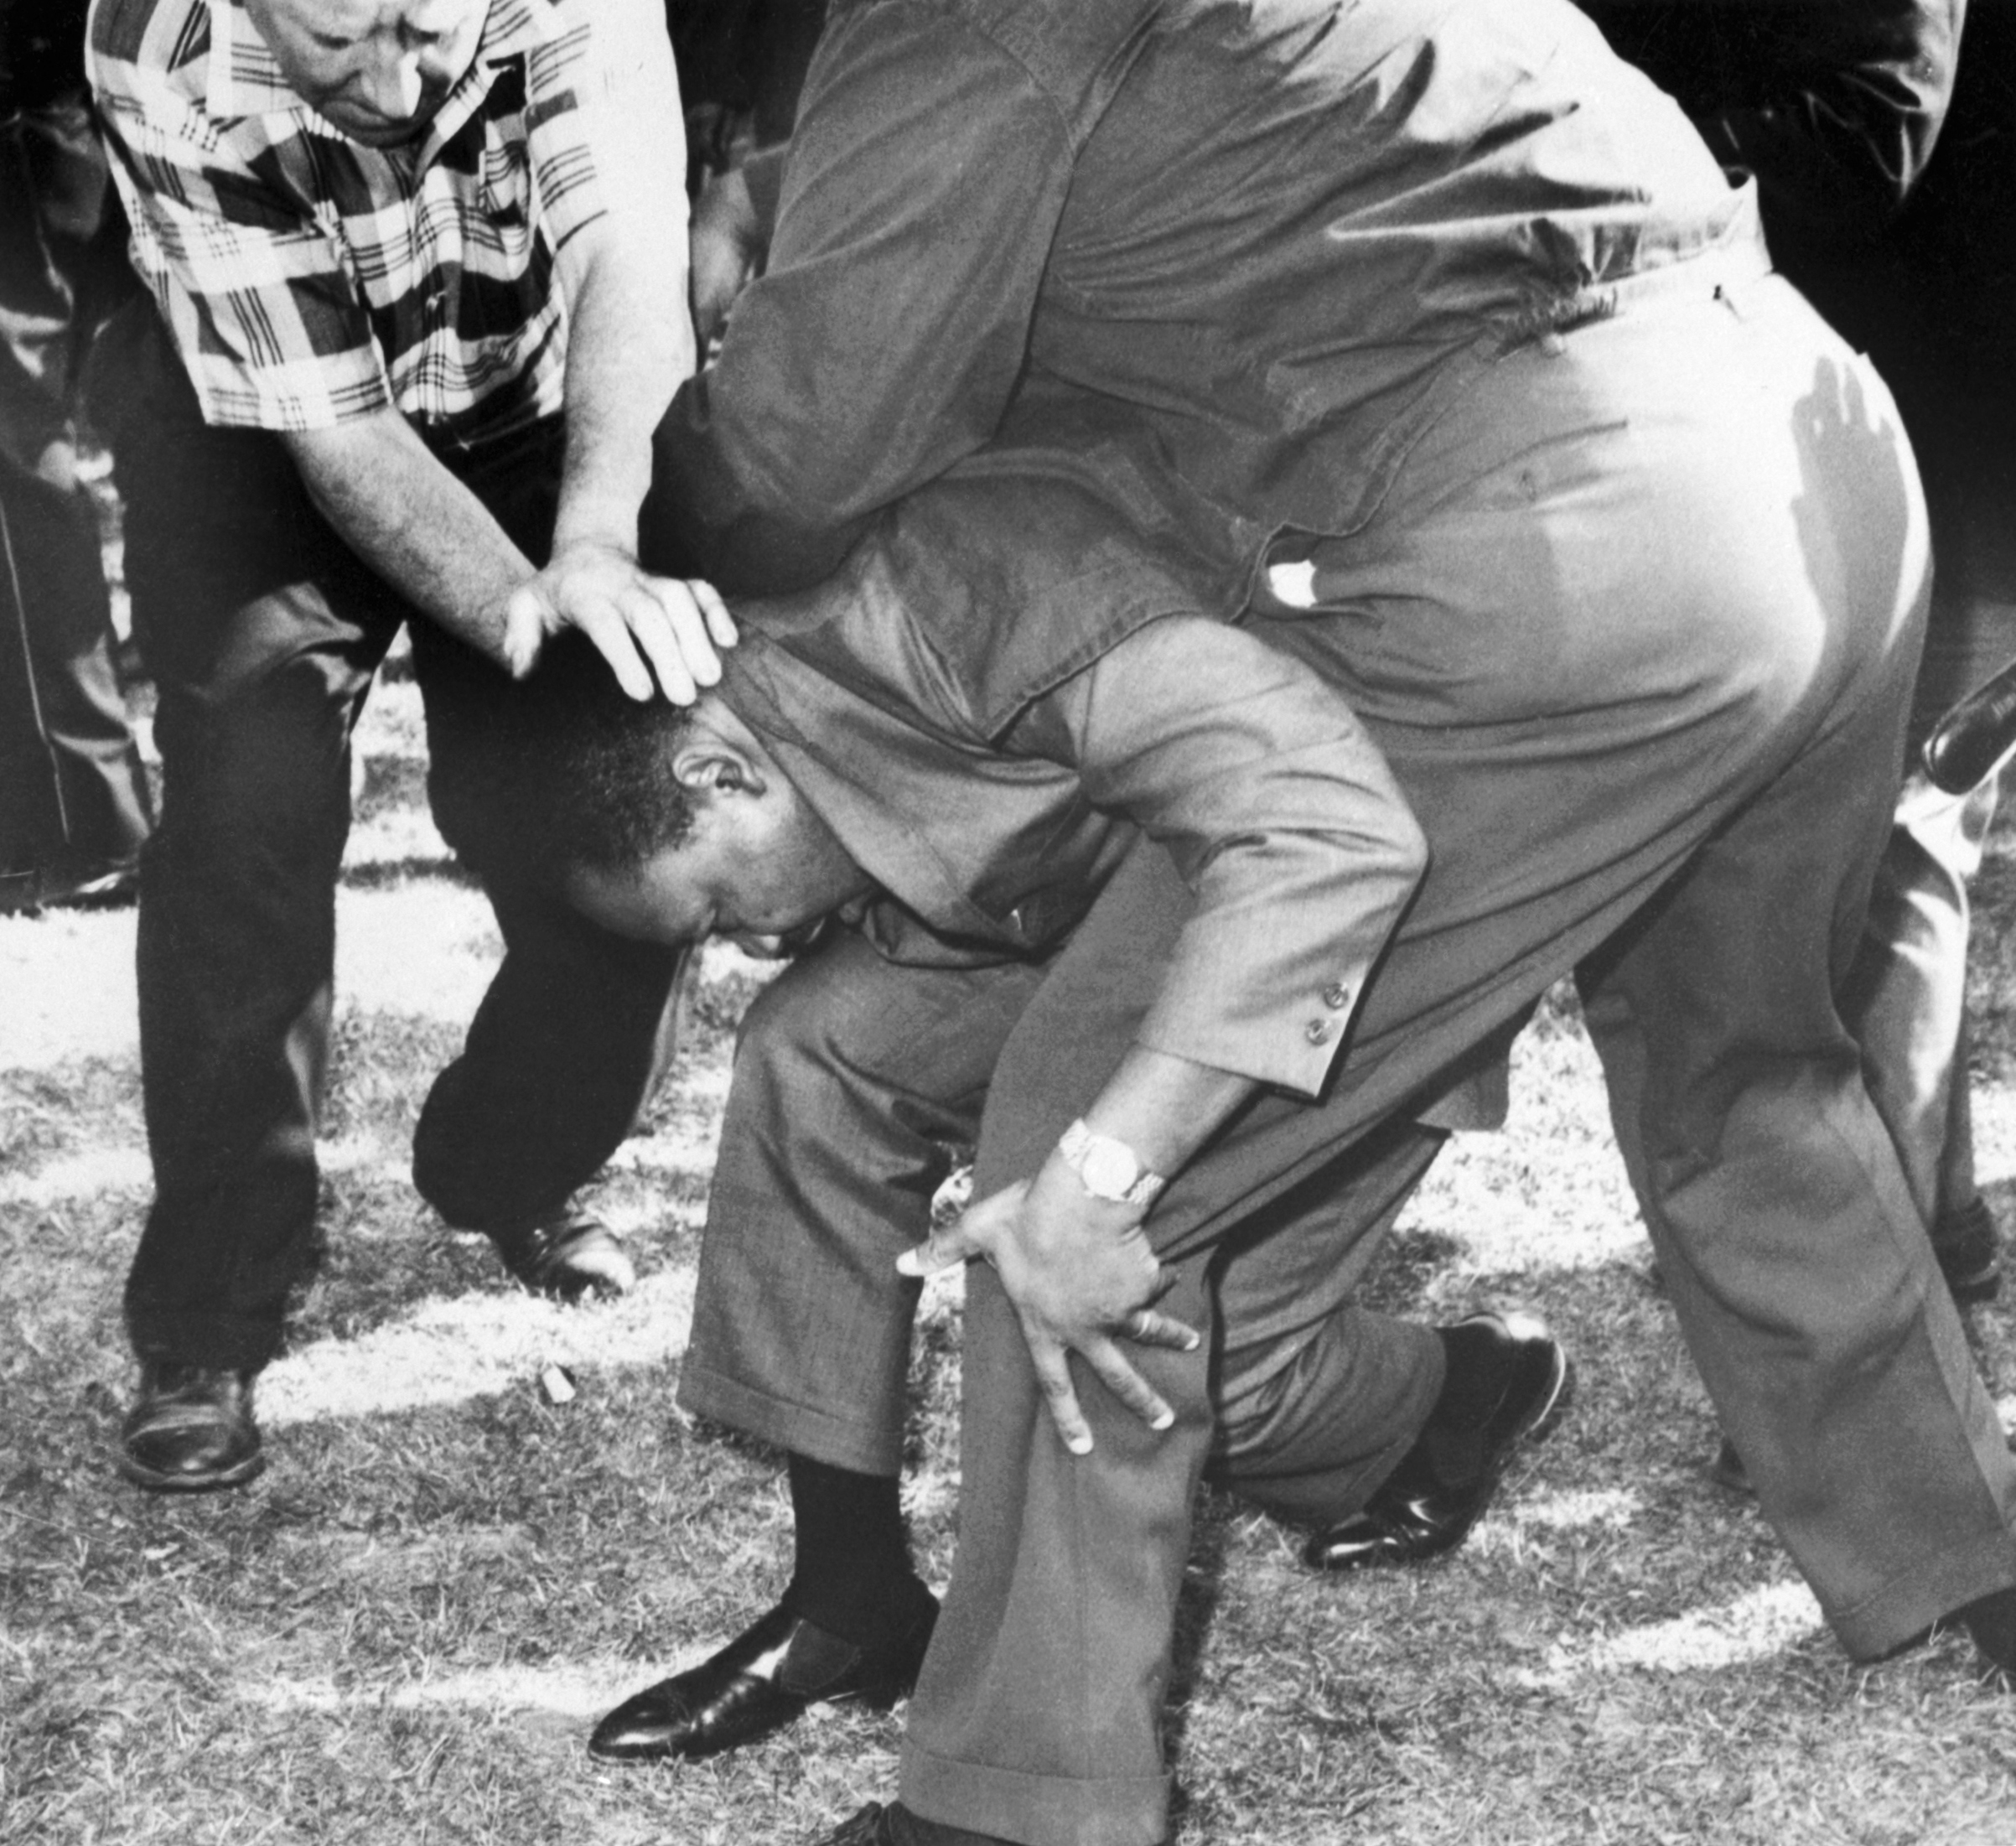 Struck on the head by a rock thrown by a group of hecklers, Dr. Martin Luther King falls to one knee. Dr. King regained his feet and led a group of marchers demonstrating alleged housing discrimination through an all-white district in Chicago, Aug. 5, 1966.